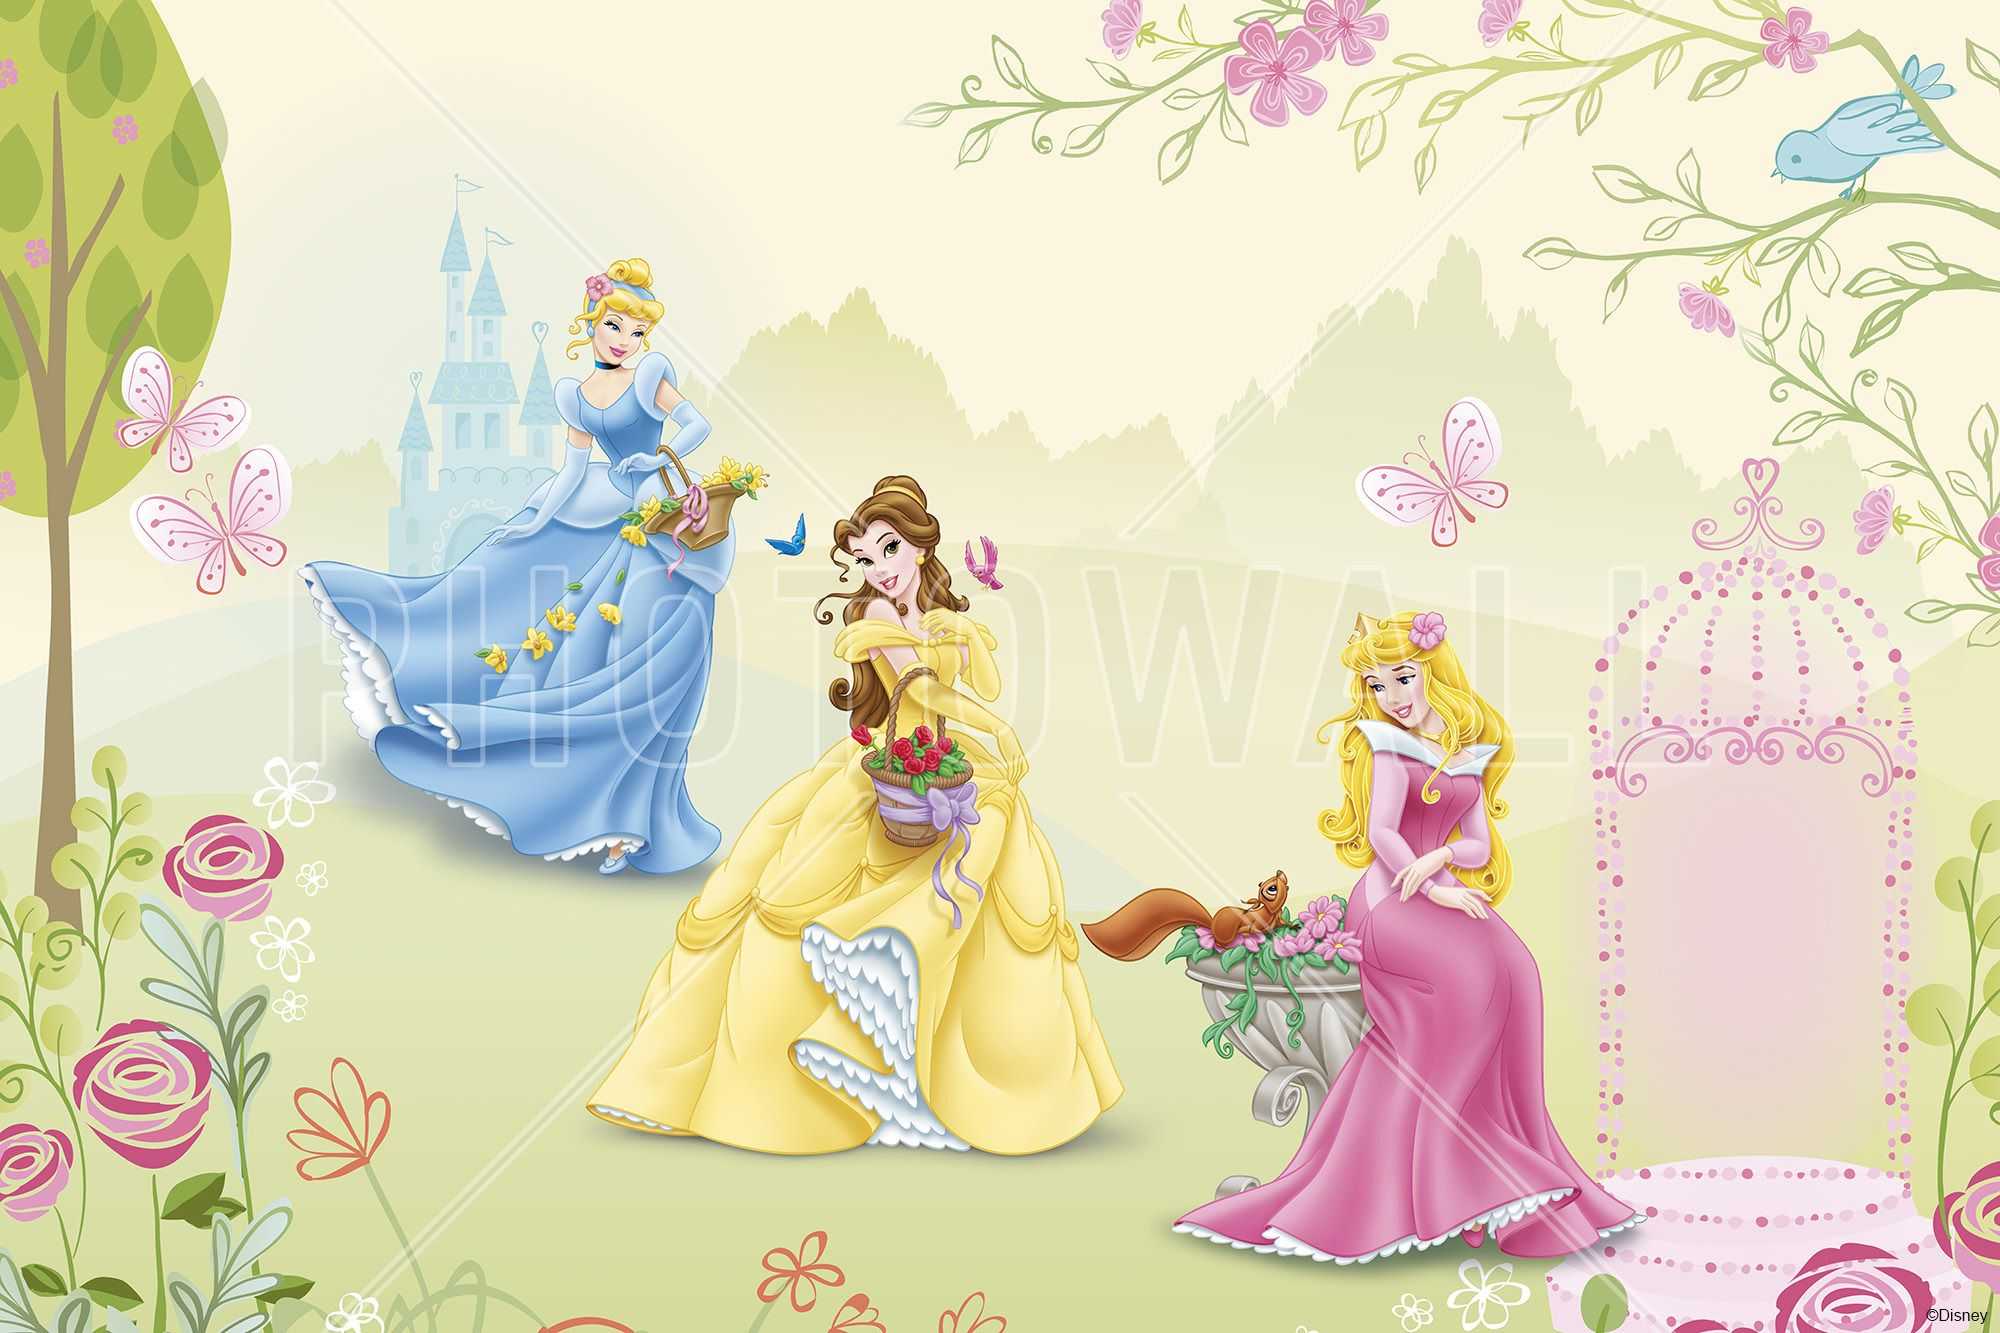 Princess Belle Wallpapers Wallpaper | HD Wallpapers | Pinterest | Hd ...